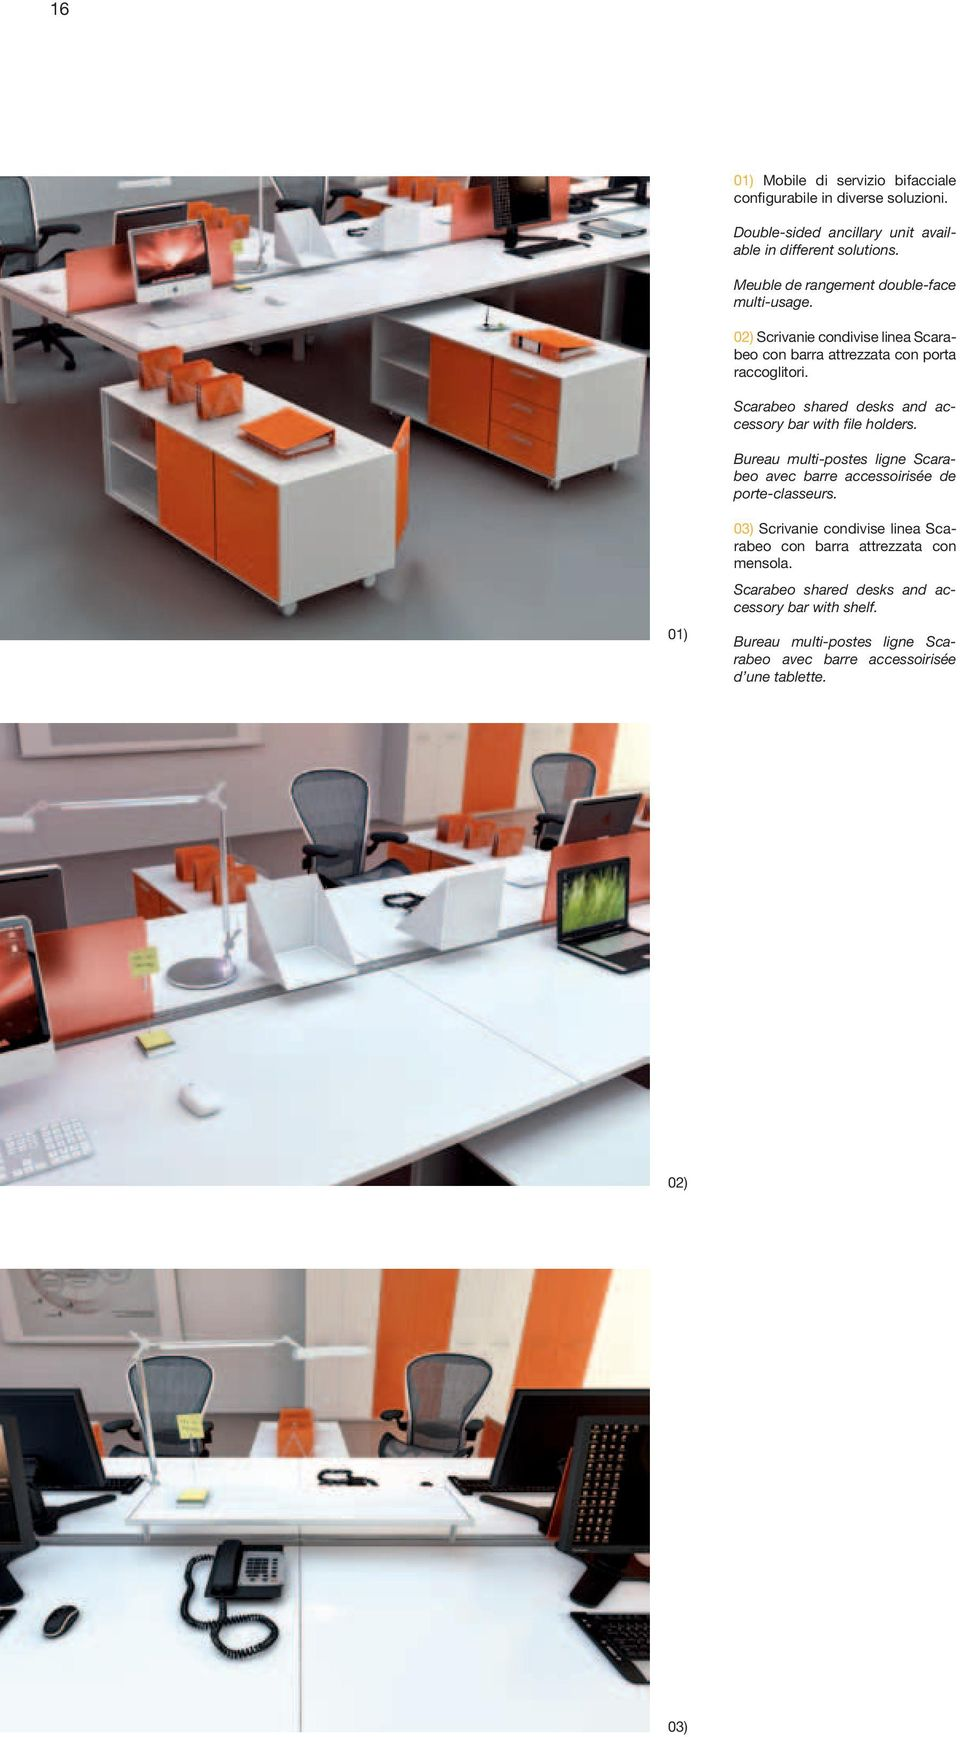 Scarabeo shared desks and accessory bar with file holders. Bureau multi-postes ligne Scarabeo avec barre accessoirisée de porte-classeurs.